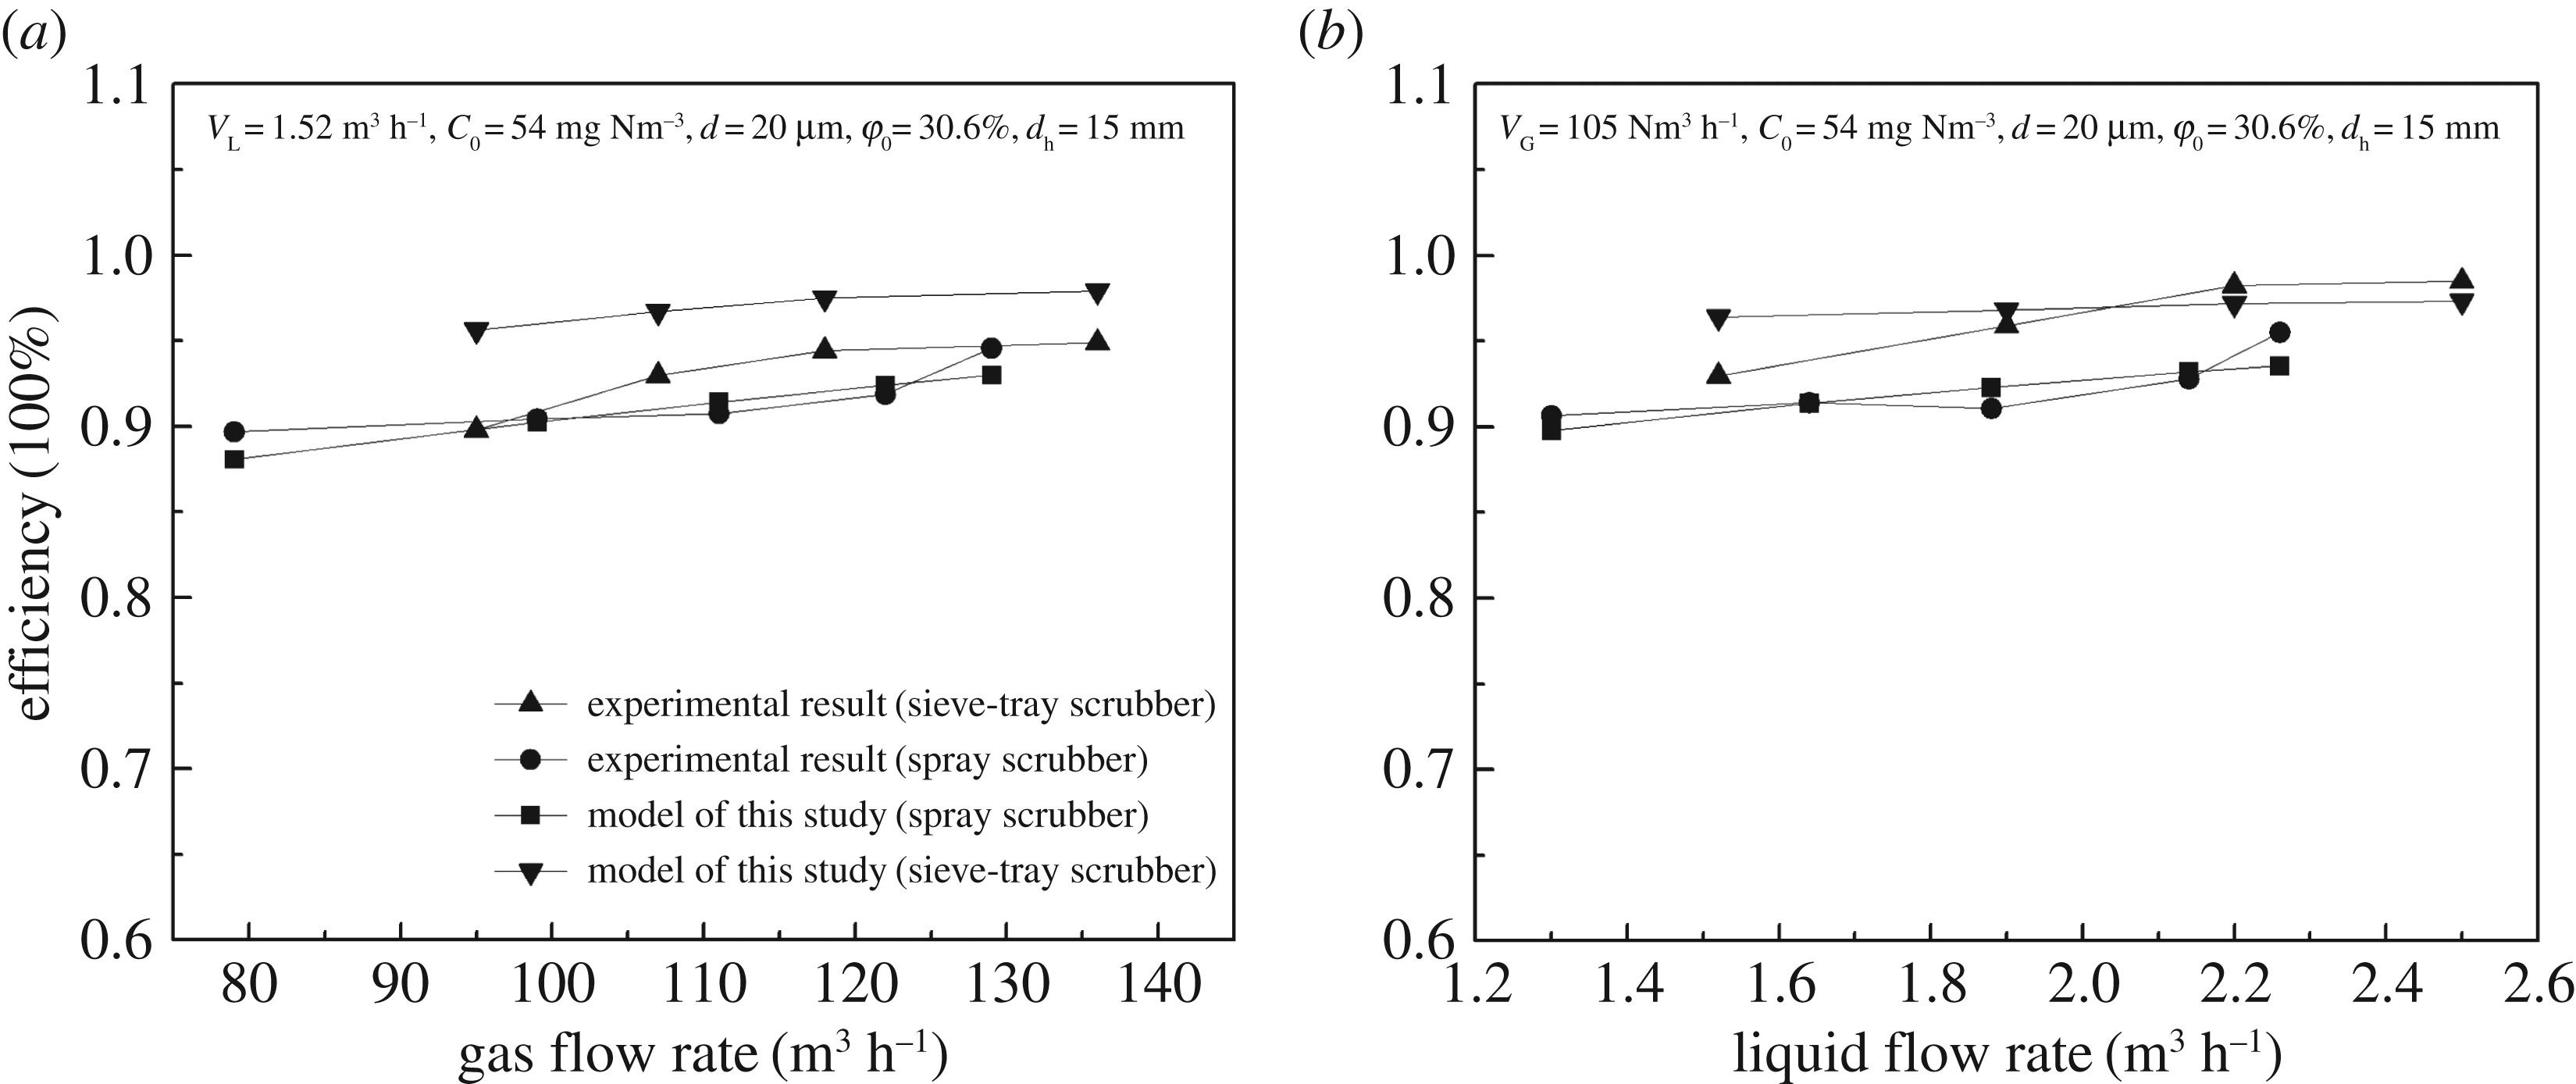 Synergistic removal of dust using the wet flue gas desulfurization